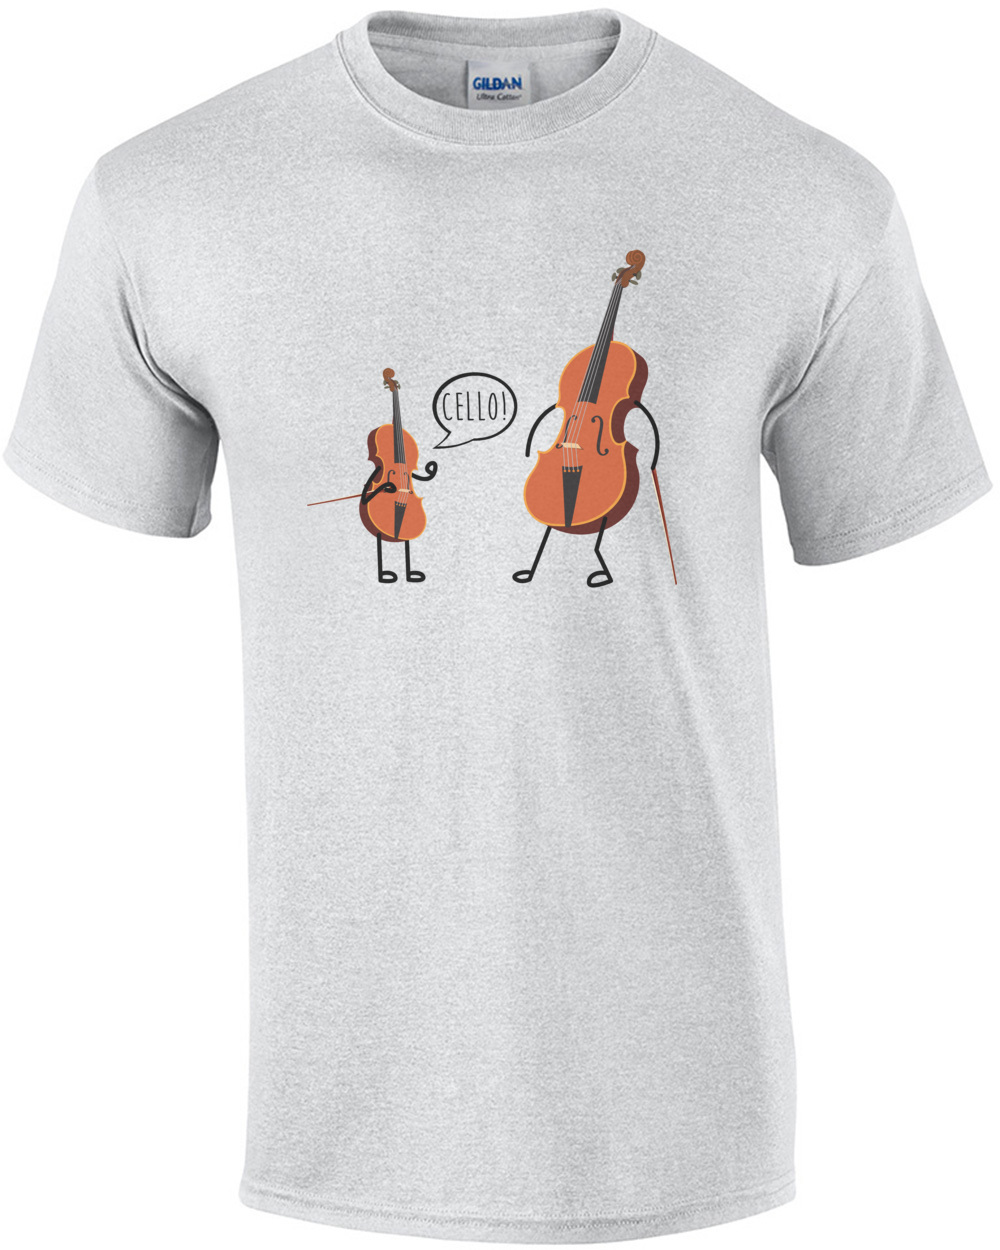 91a0d8f6a Cello! Funny musician t-shirt